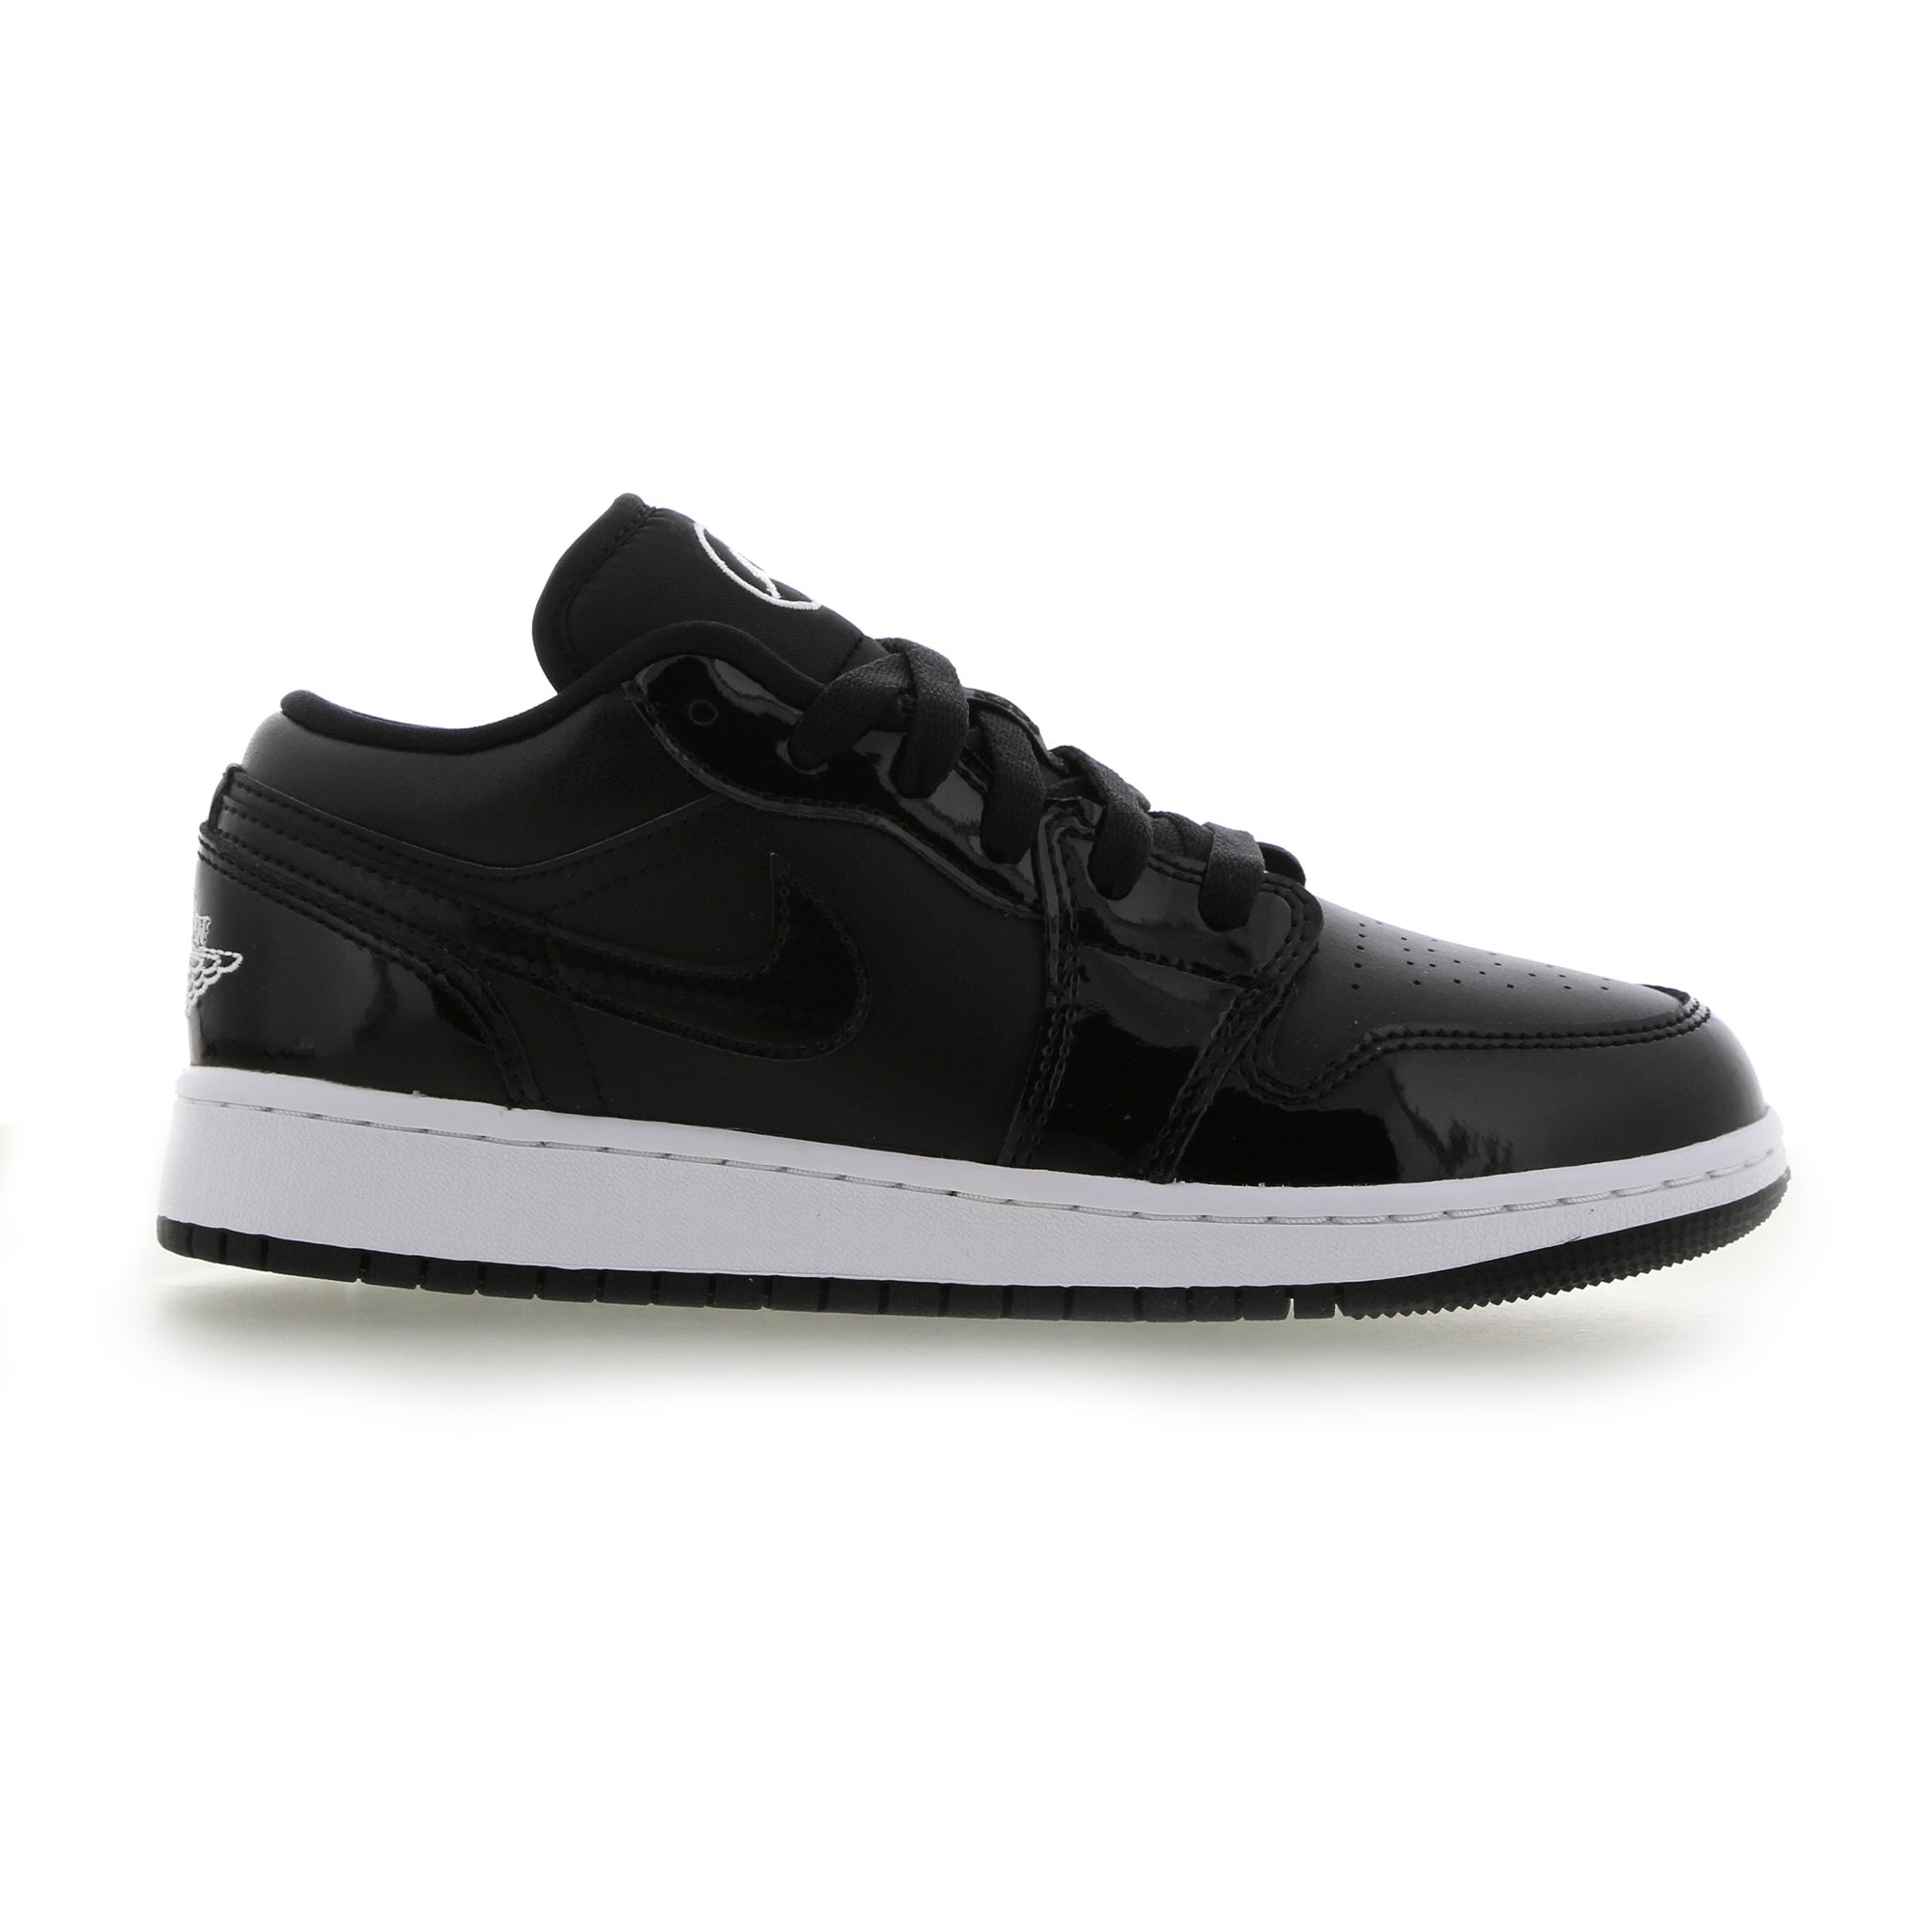 Shop Jordan 1 Low Shoes